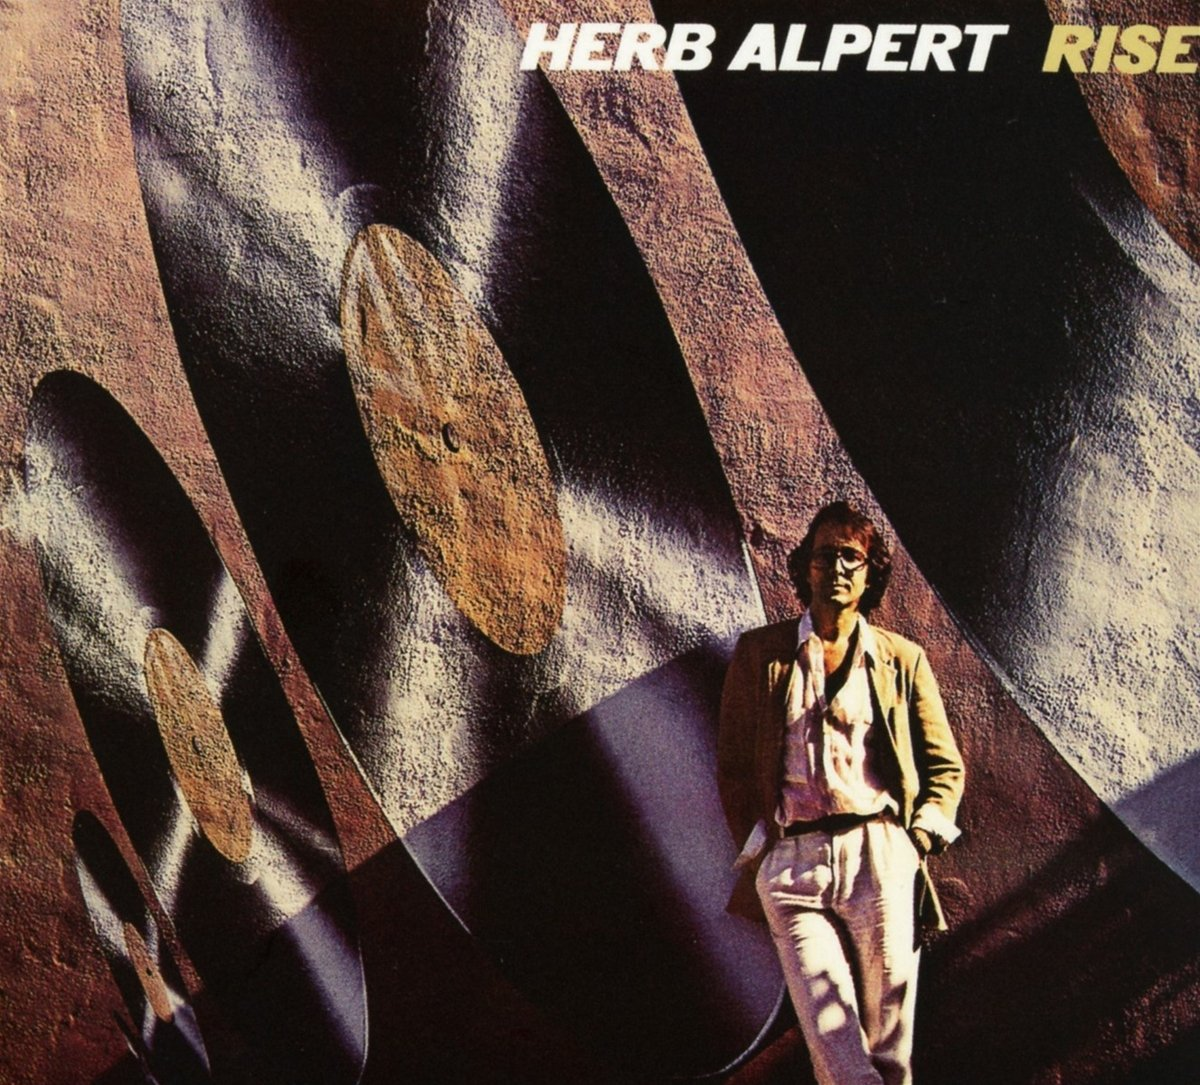 Herb Alpert - Rise - Amazon.com Music